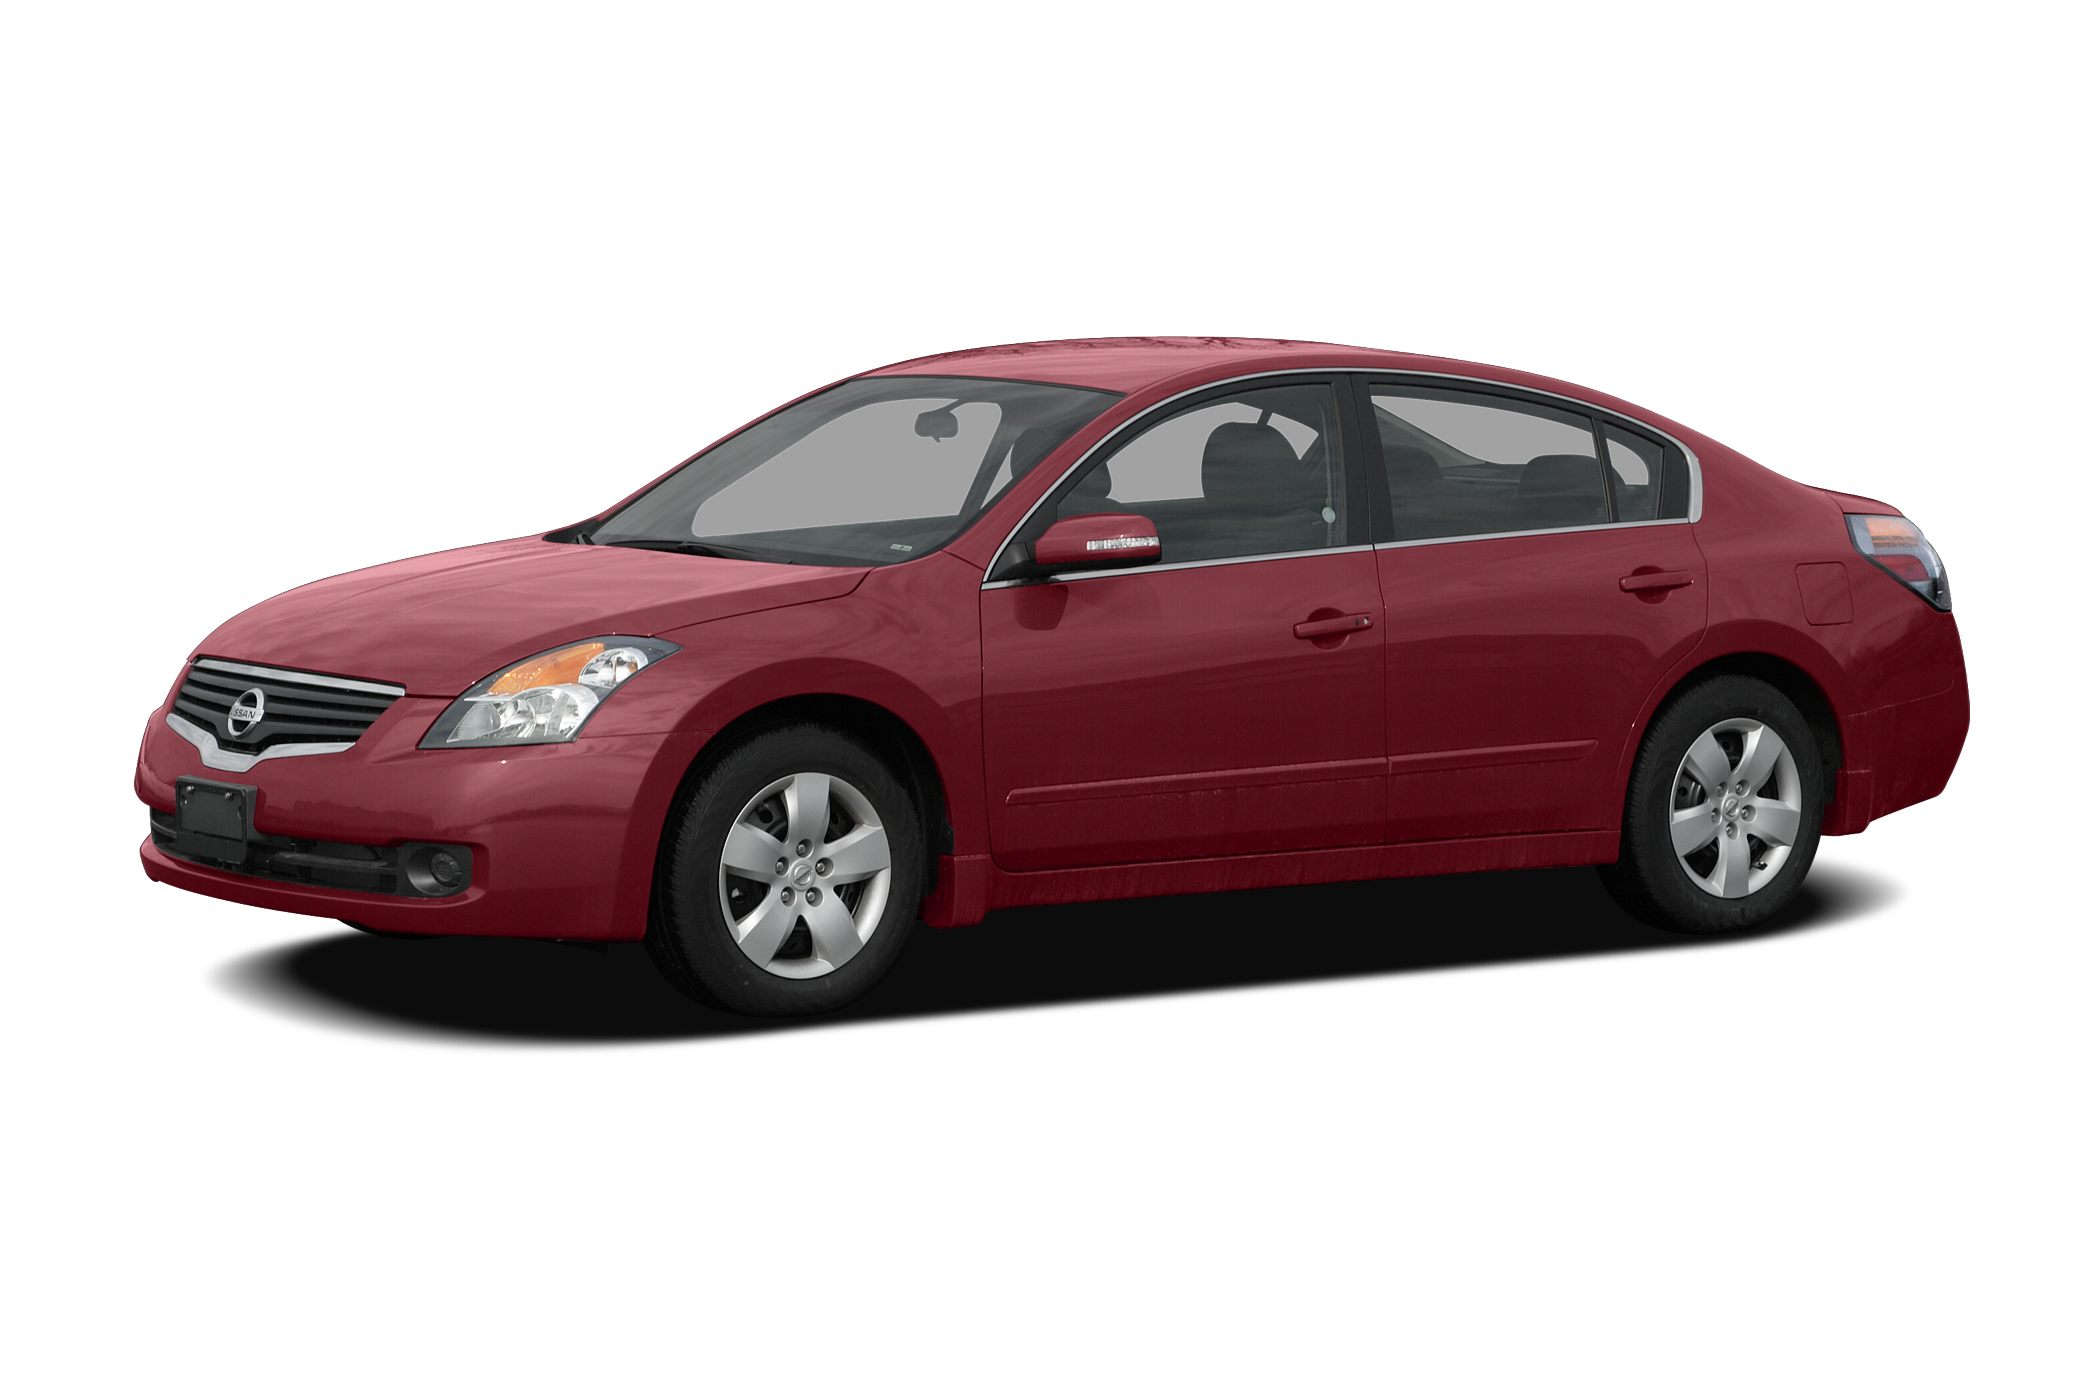 2009 Nissan Altima 2.5 S Coupe for sale in El Paso for $10,995 with 0 miles